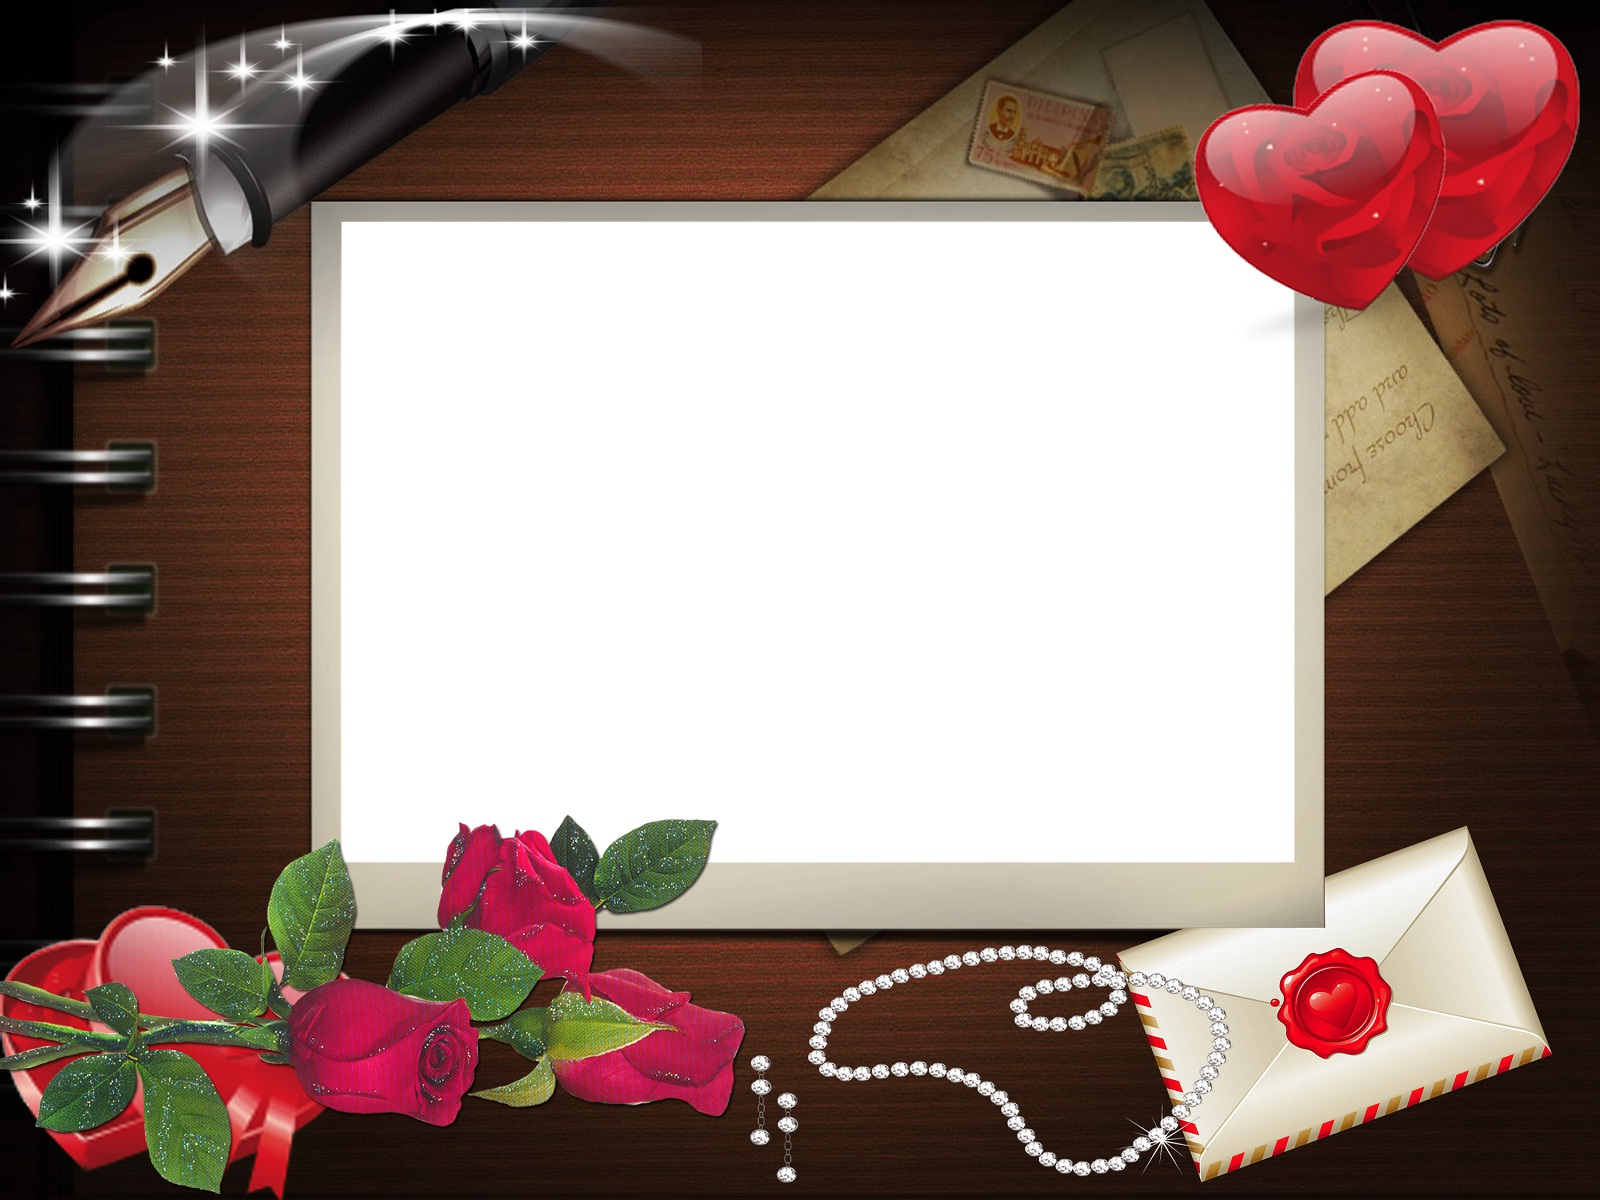 Picture Frame Love Wallpaper: Photoshop Frames Wallpapers Free Downloads